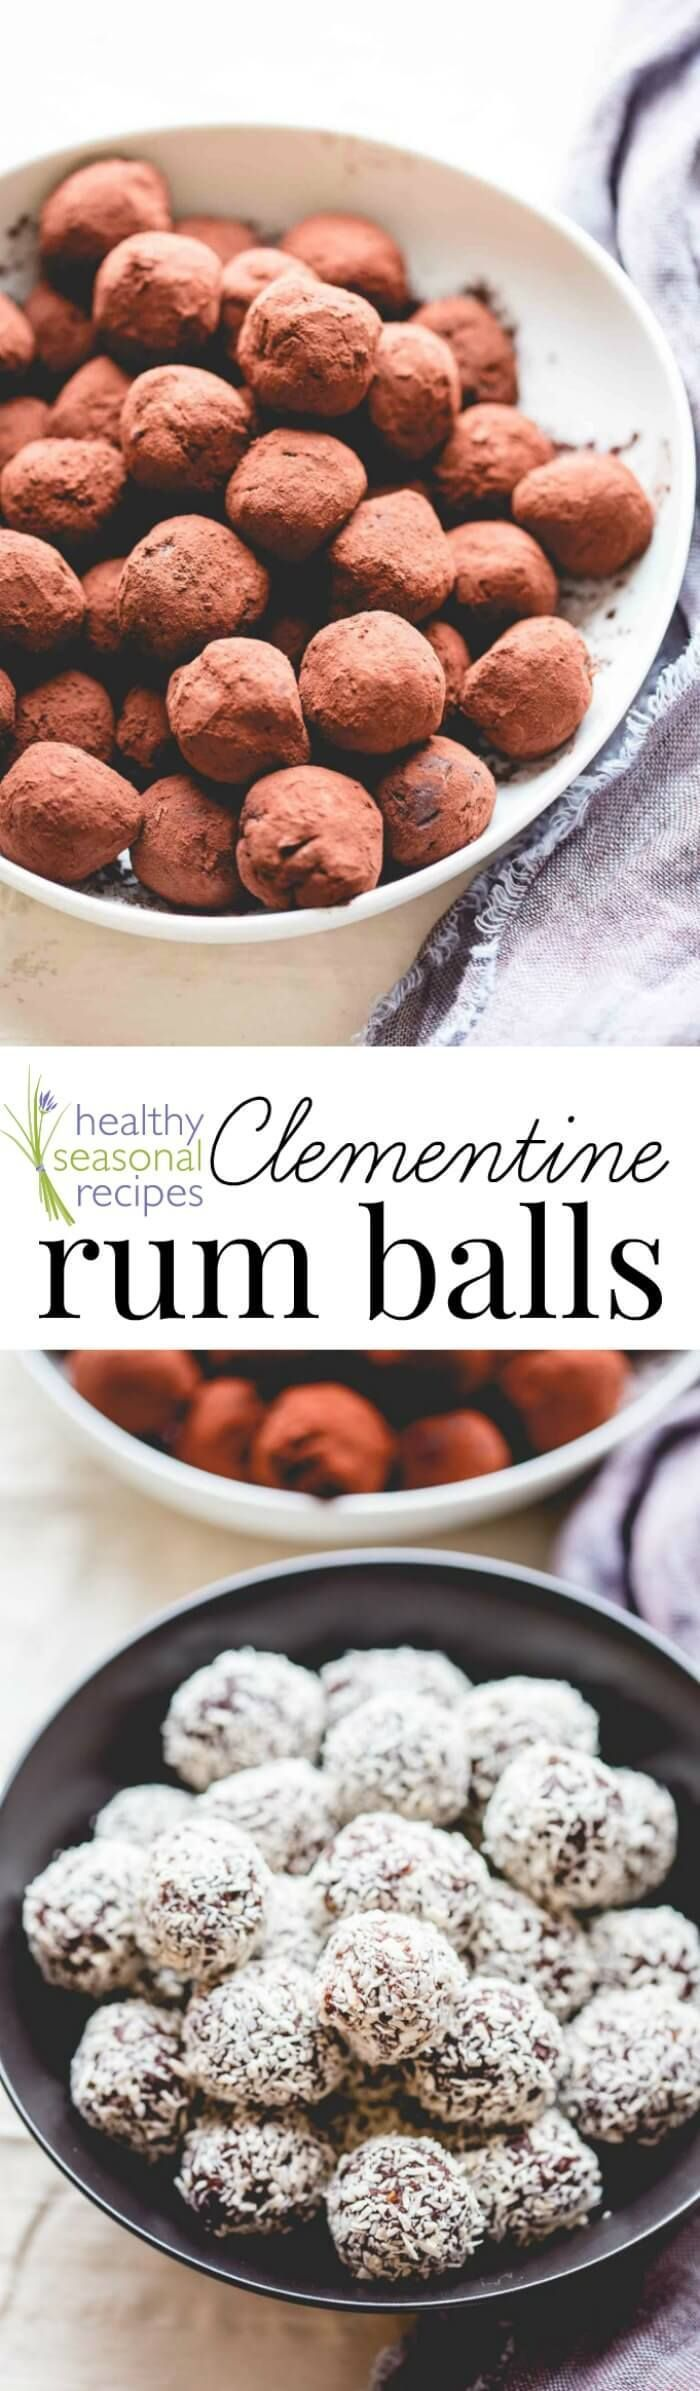 ... Rum Balls on Pinterest | Rum truffles, The christmas and Bourbon balls